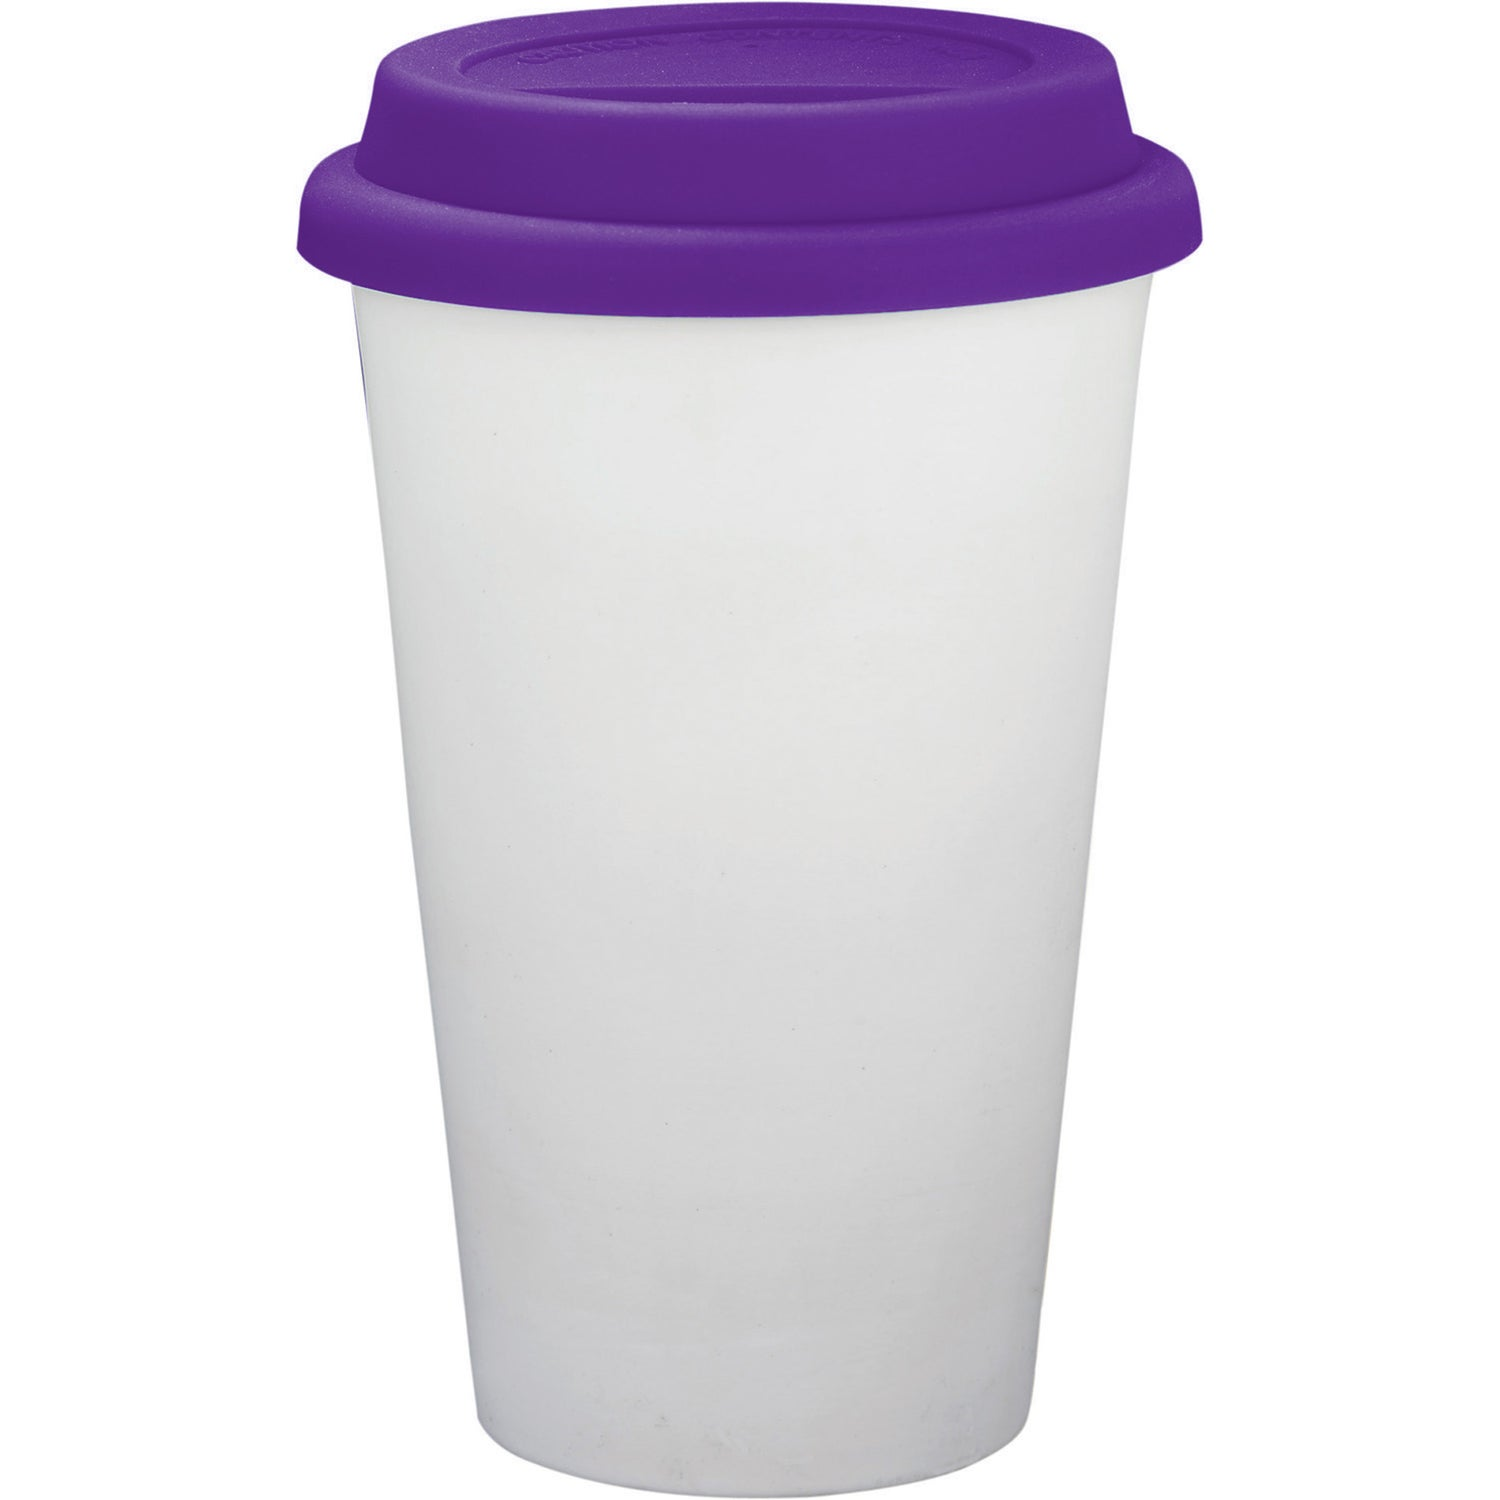 Double Wall Ceramic Tumbler 11 Oz Promotional Travel Mugs